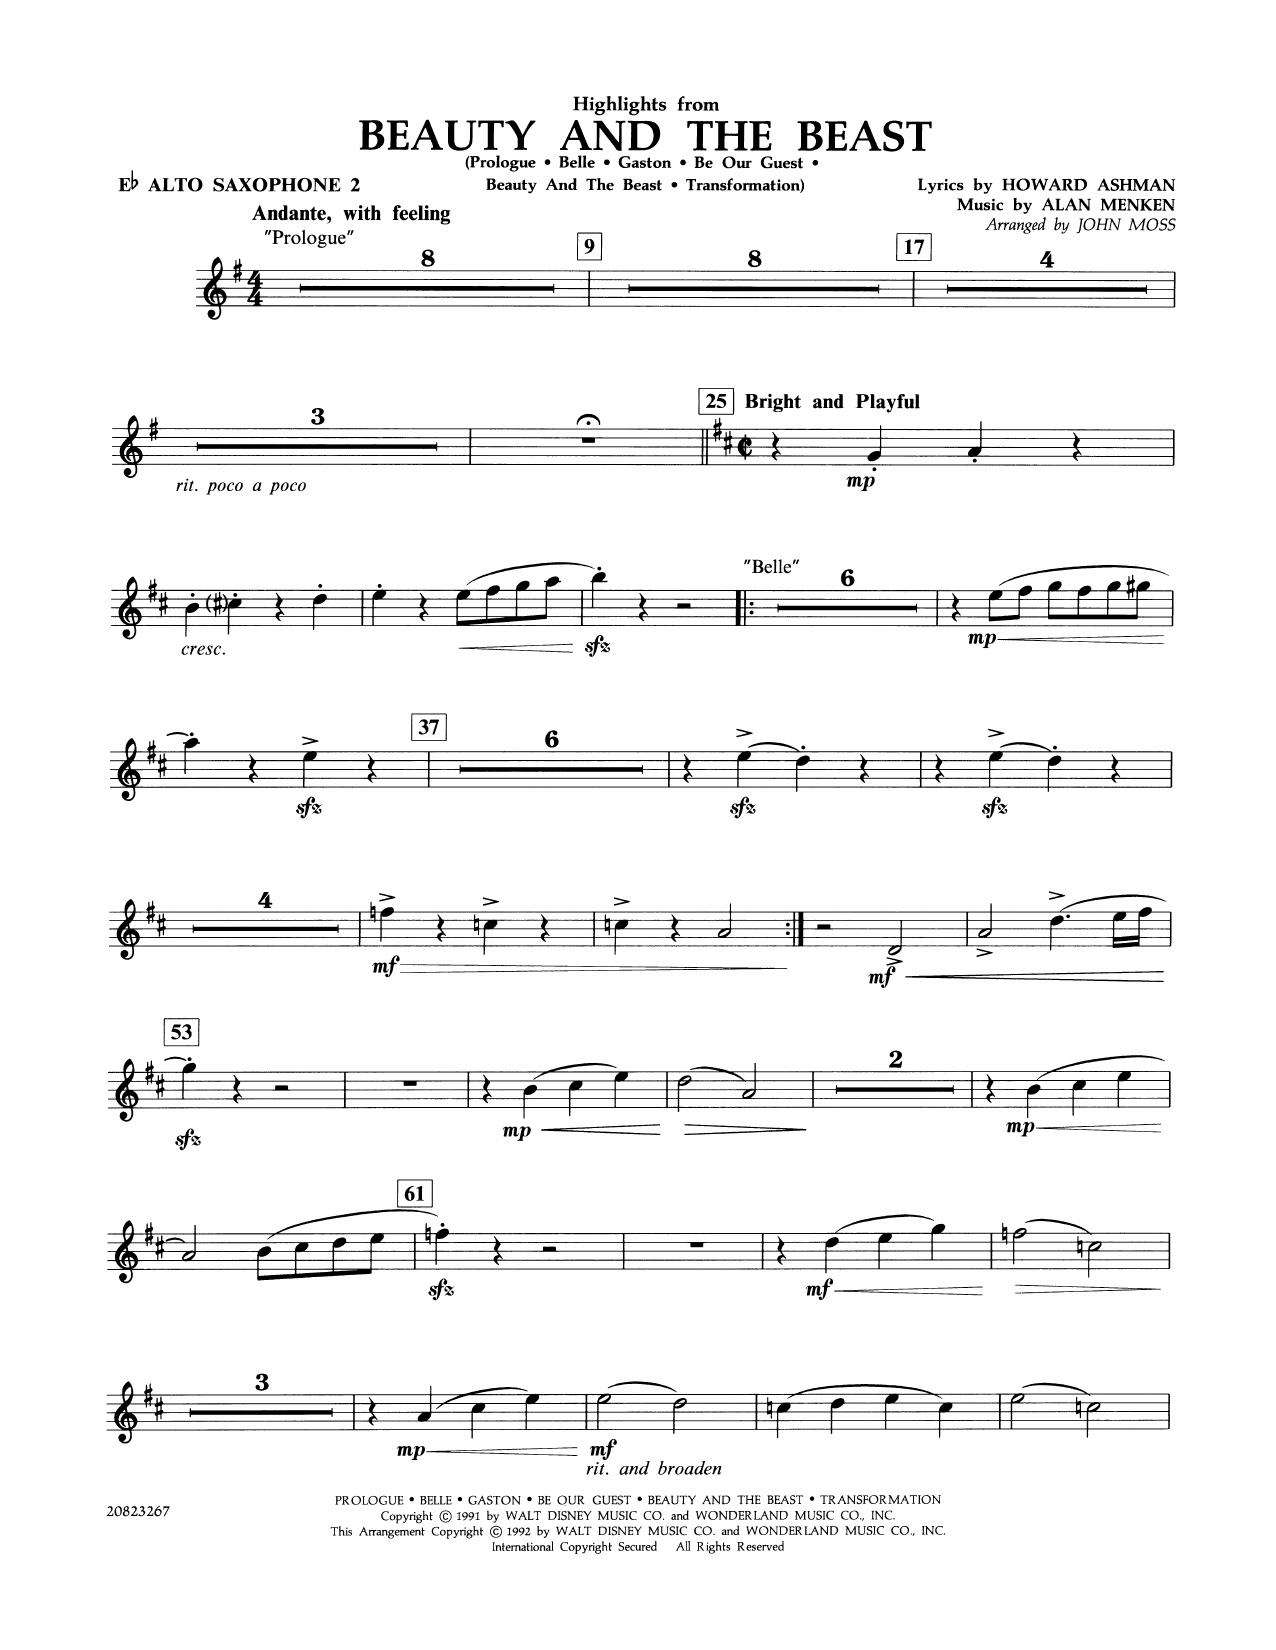 Highlights from Beauty and the Beast - Eb Alto Saxophone 2 (Concert Band)